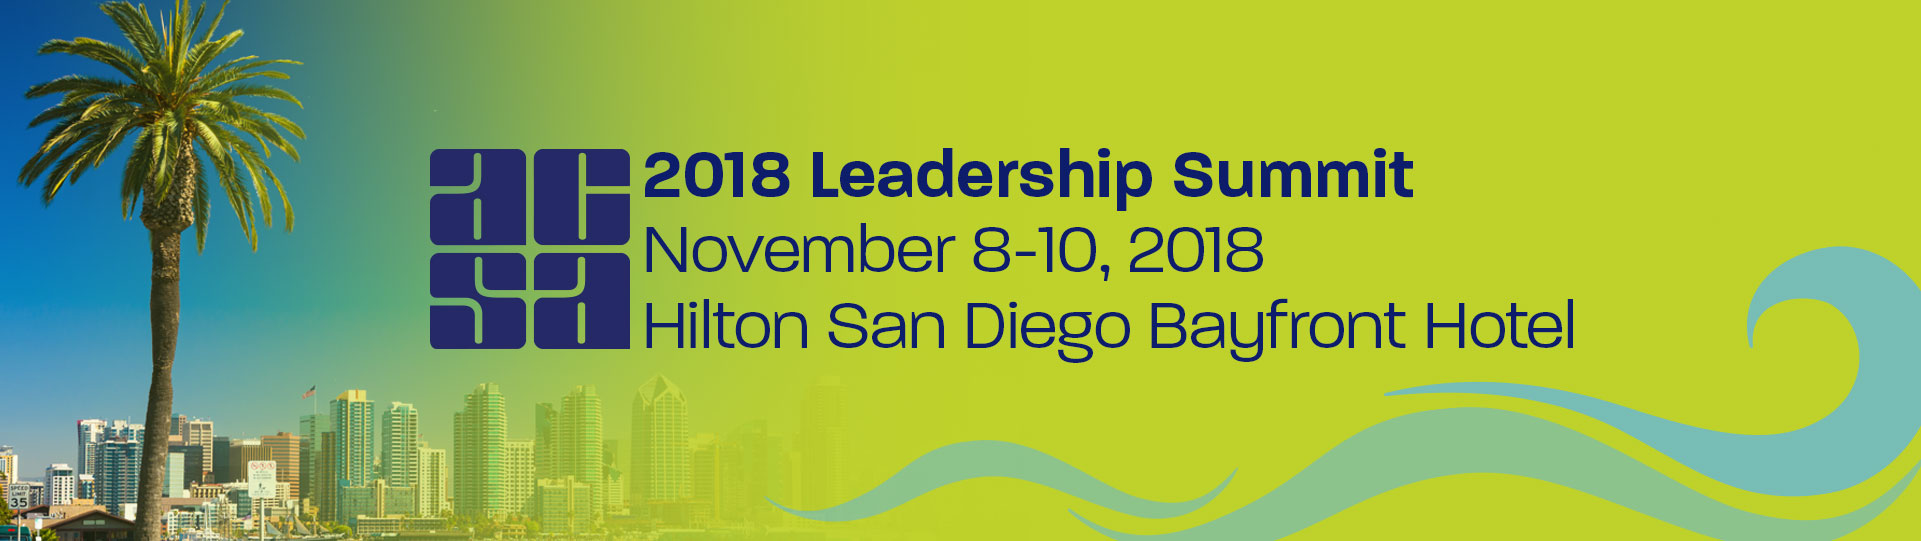 2018 ACSA Leadership Summit